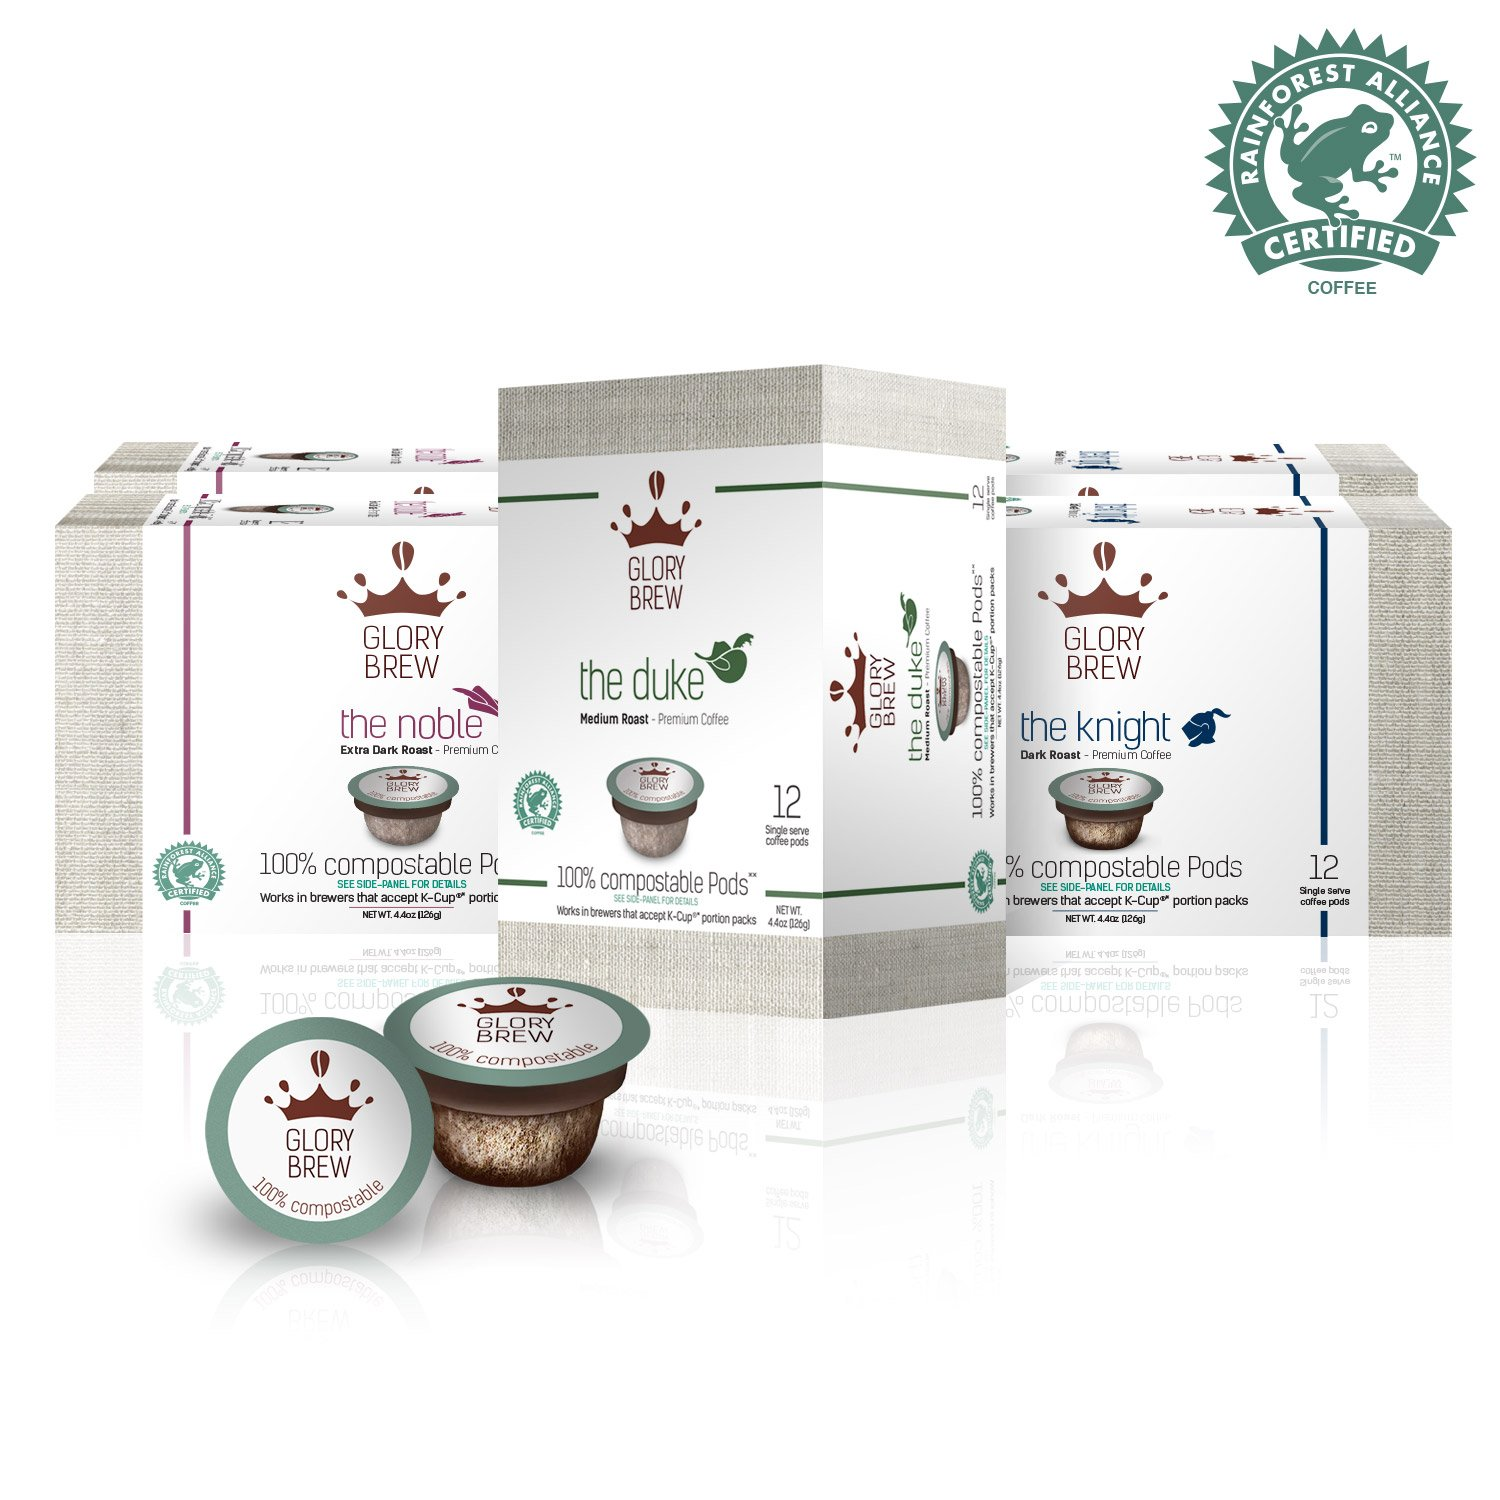 GLORYBREW – Variety Pack - 72 count 100% Compostable Coffee Pods for Keurig K-Cup Brewers - Rainforest Alliance certified – Medium, Dark and Extra Dark Roast | Better than Biodegradable Coffee Pods by GLORYBREW